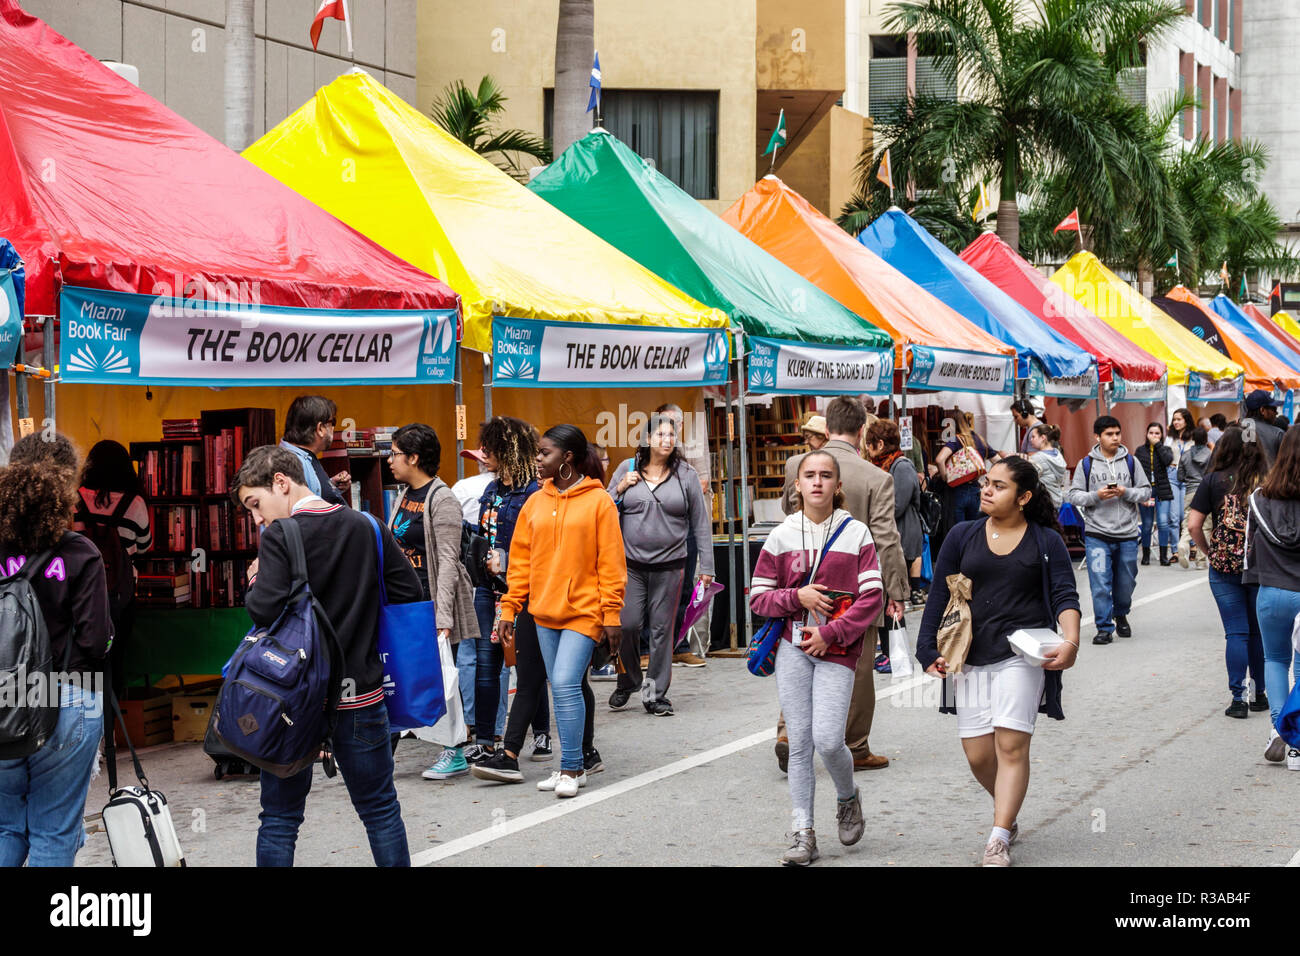 Miami Miami Florida-Dade College Book Fair annual event booths stalls vendors booksellers books sale Hispanic teen girl shopping - Stock Image